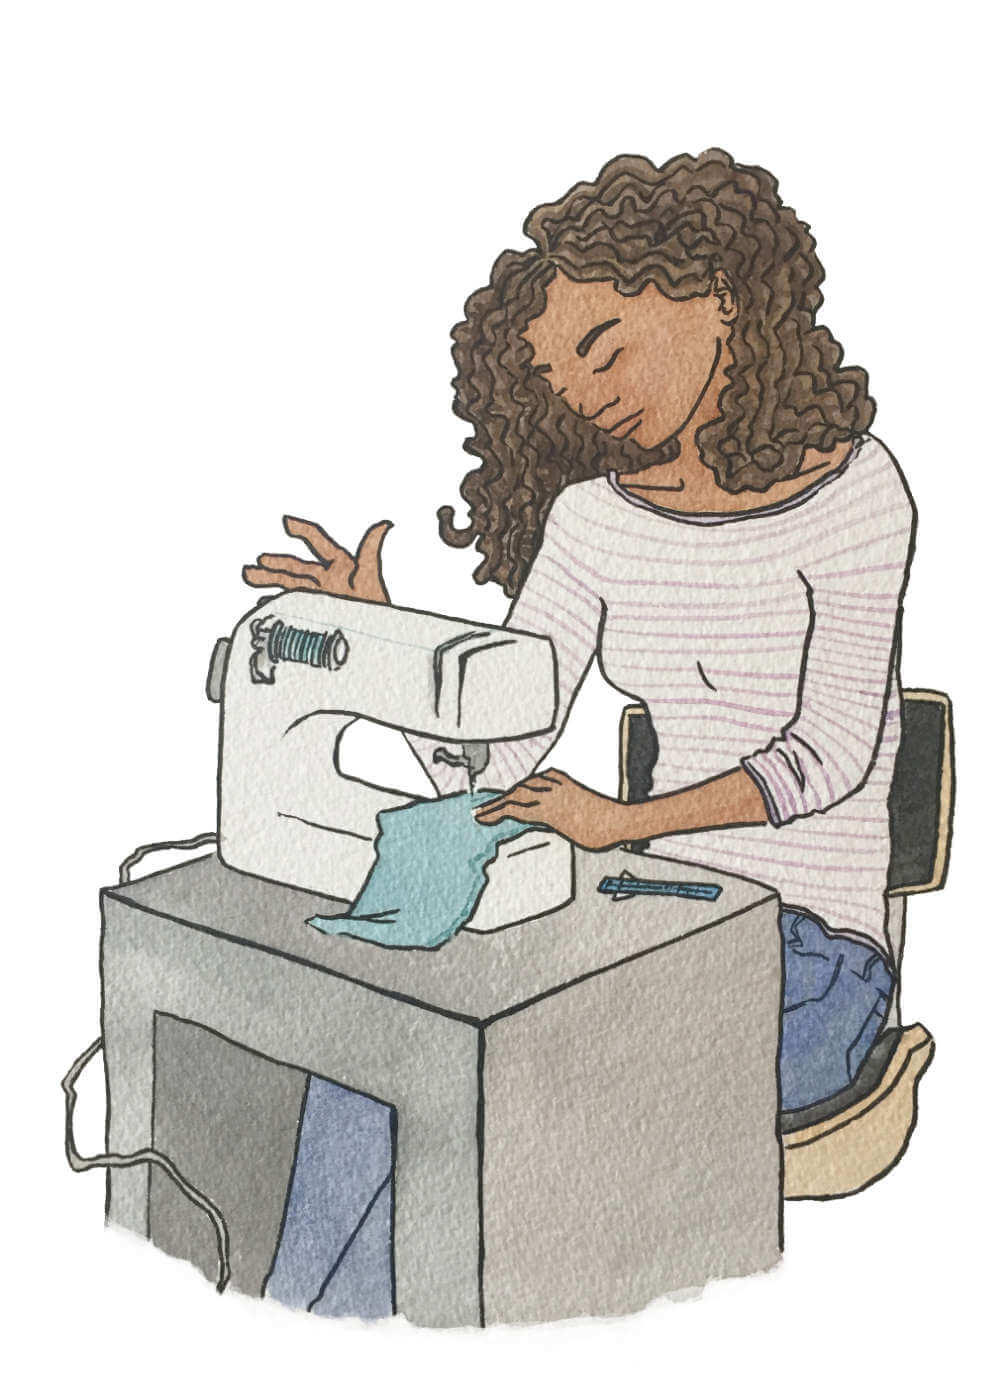 Sew Good - Self care through personal sewing projects.